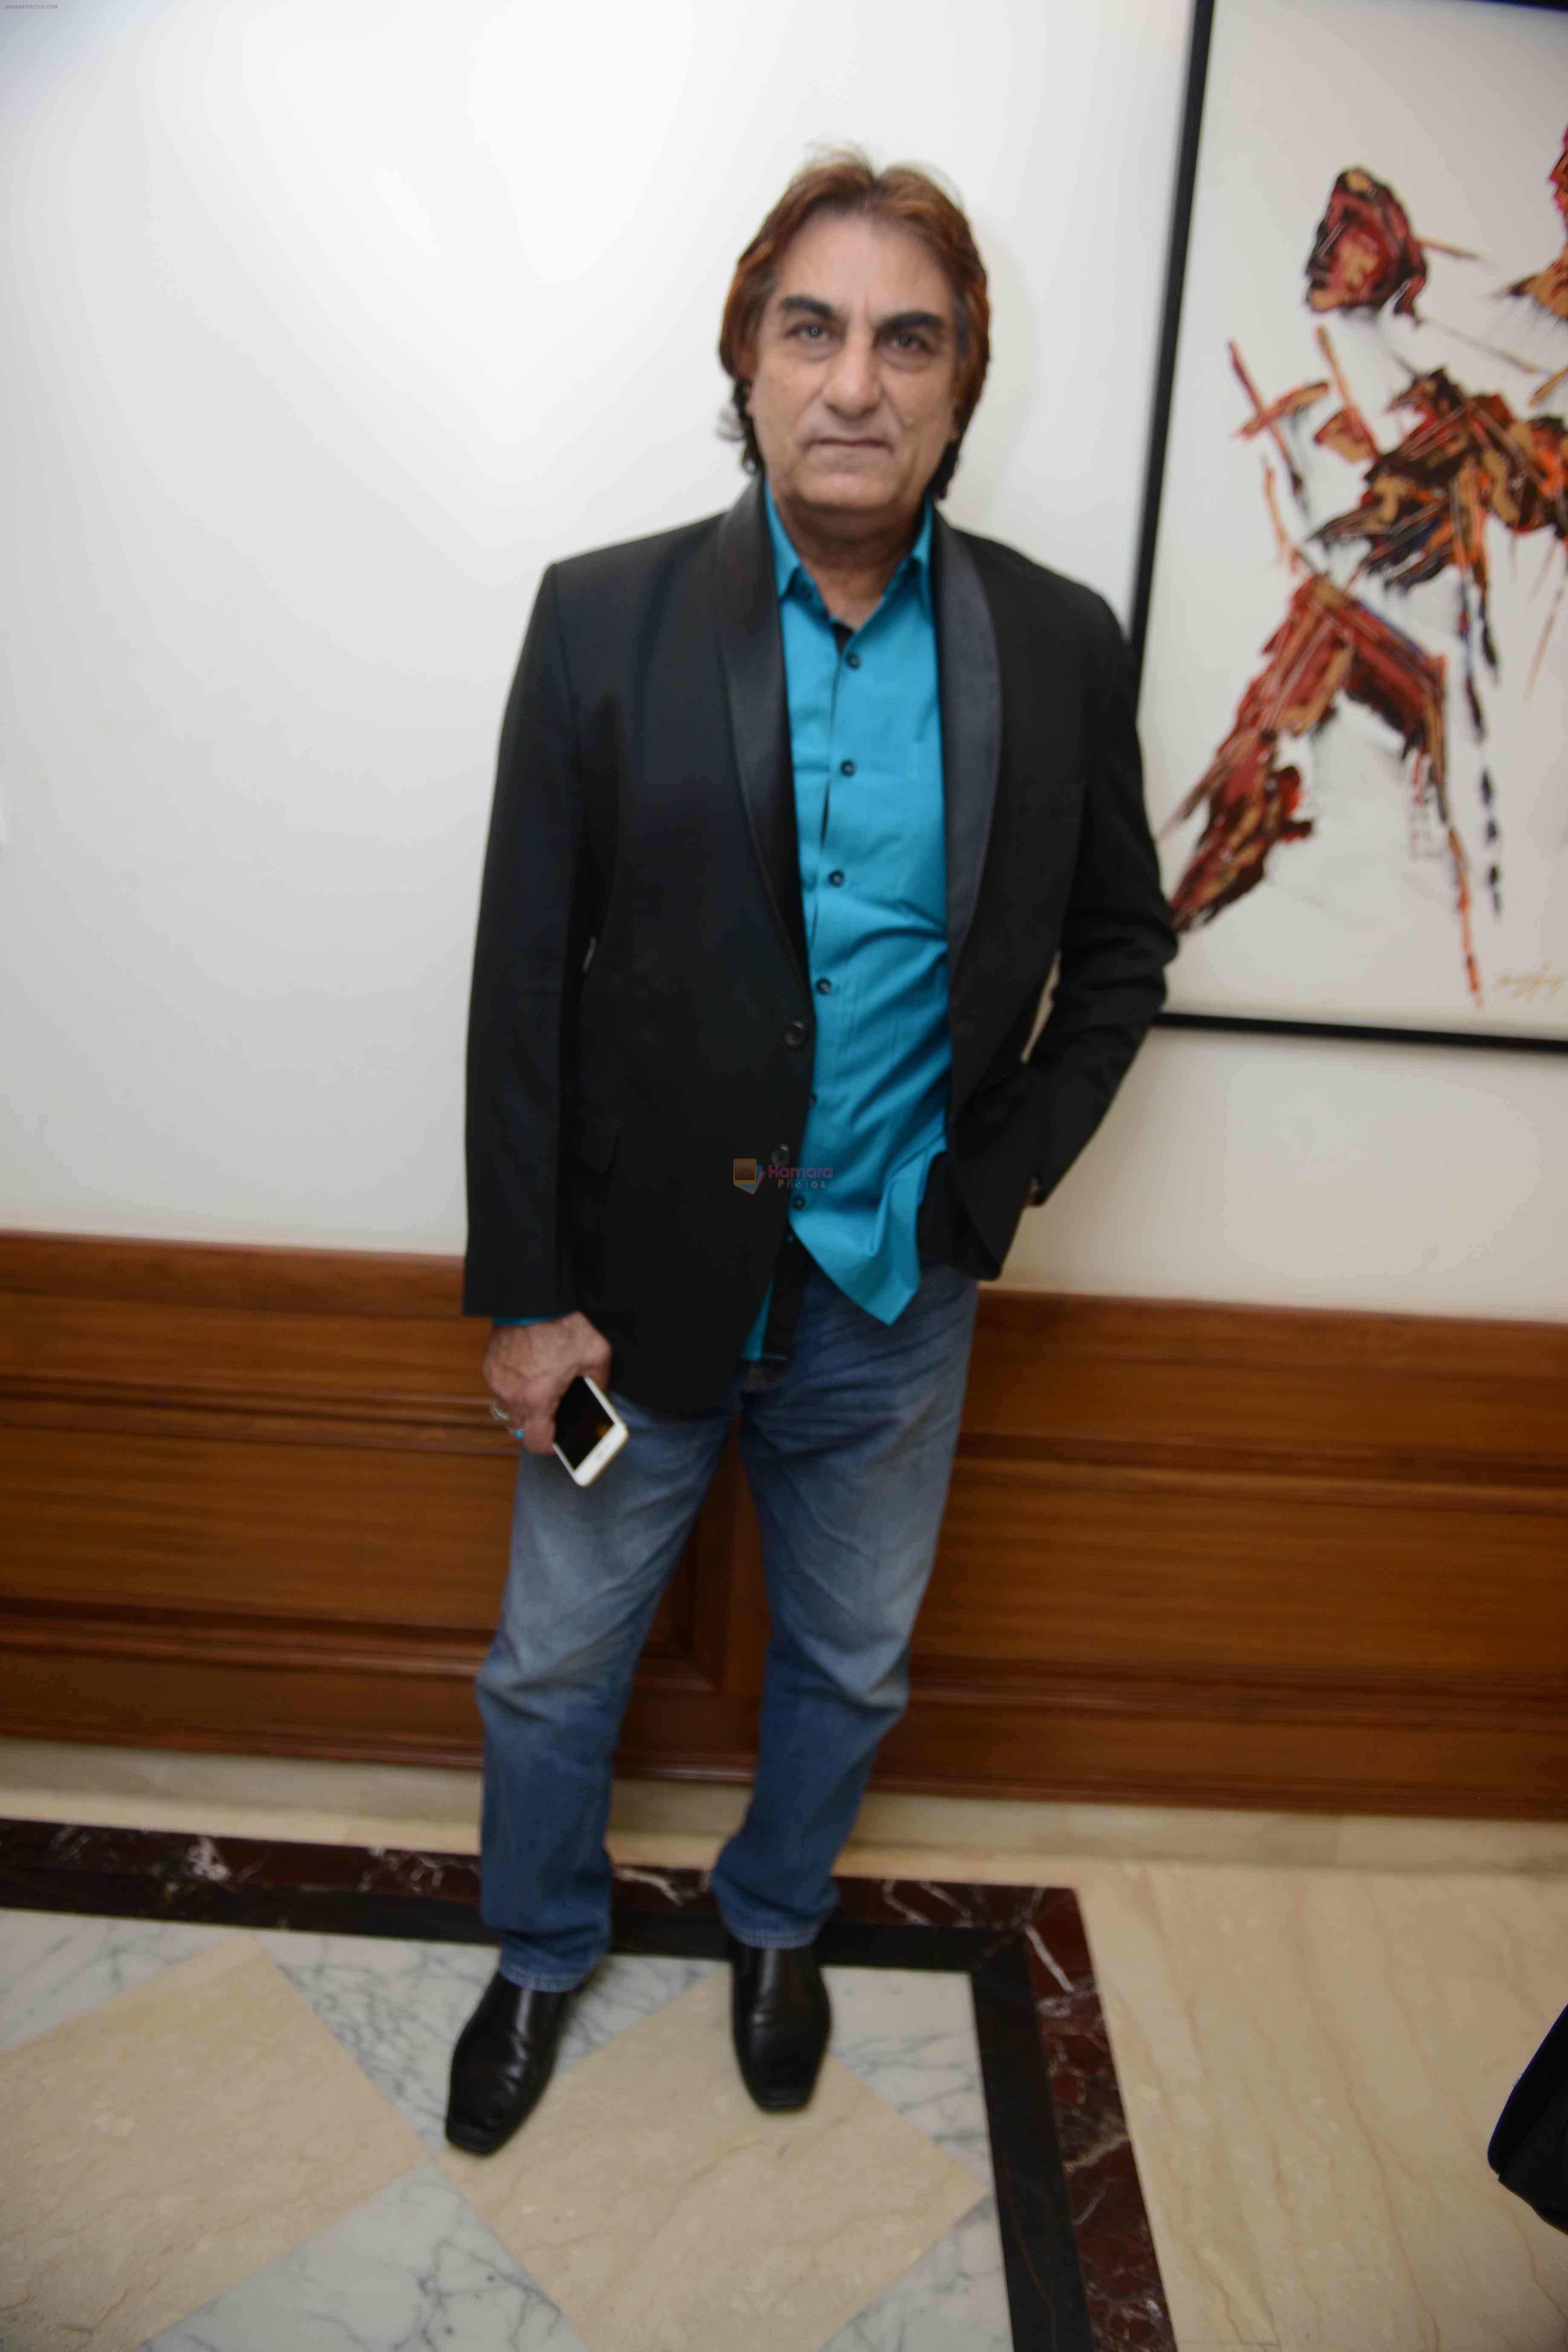 Ali Khan during the Press confrence of Luv Kush biggest Ram Leela at Constitutional Club, Rafi Marg in New Delhi on 31st July 2016